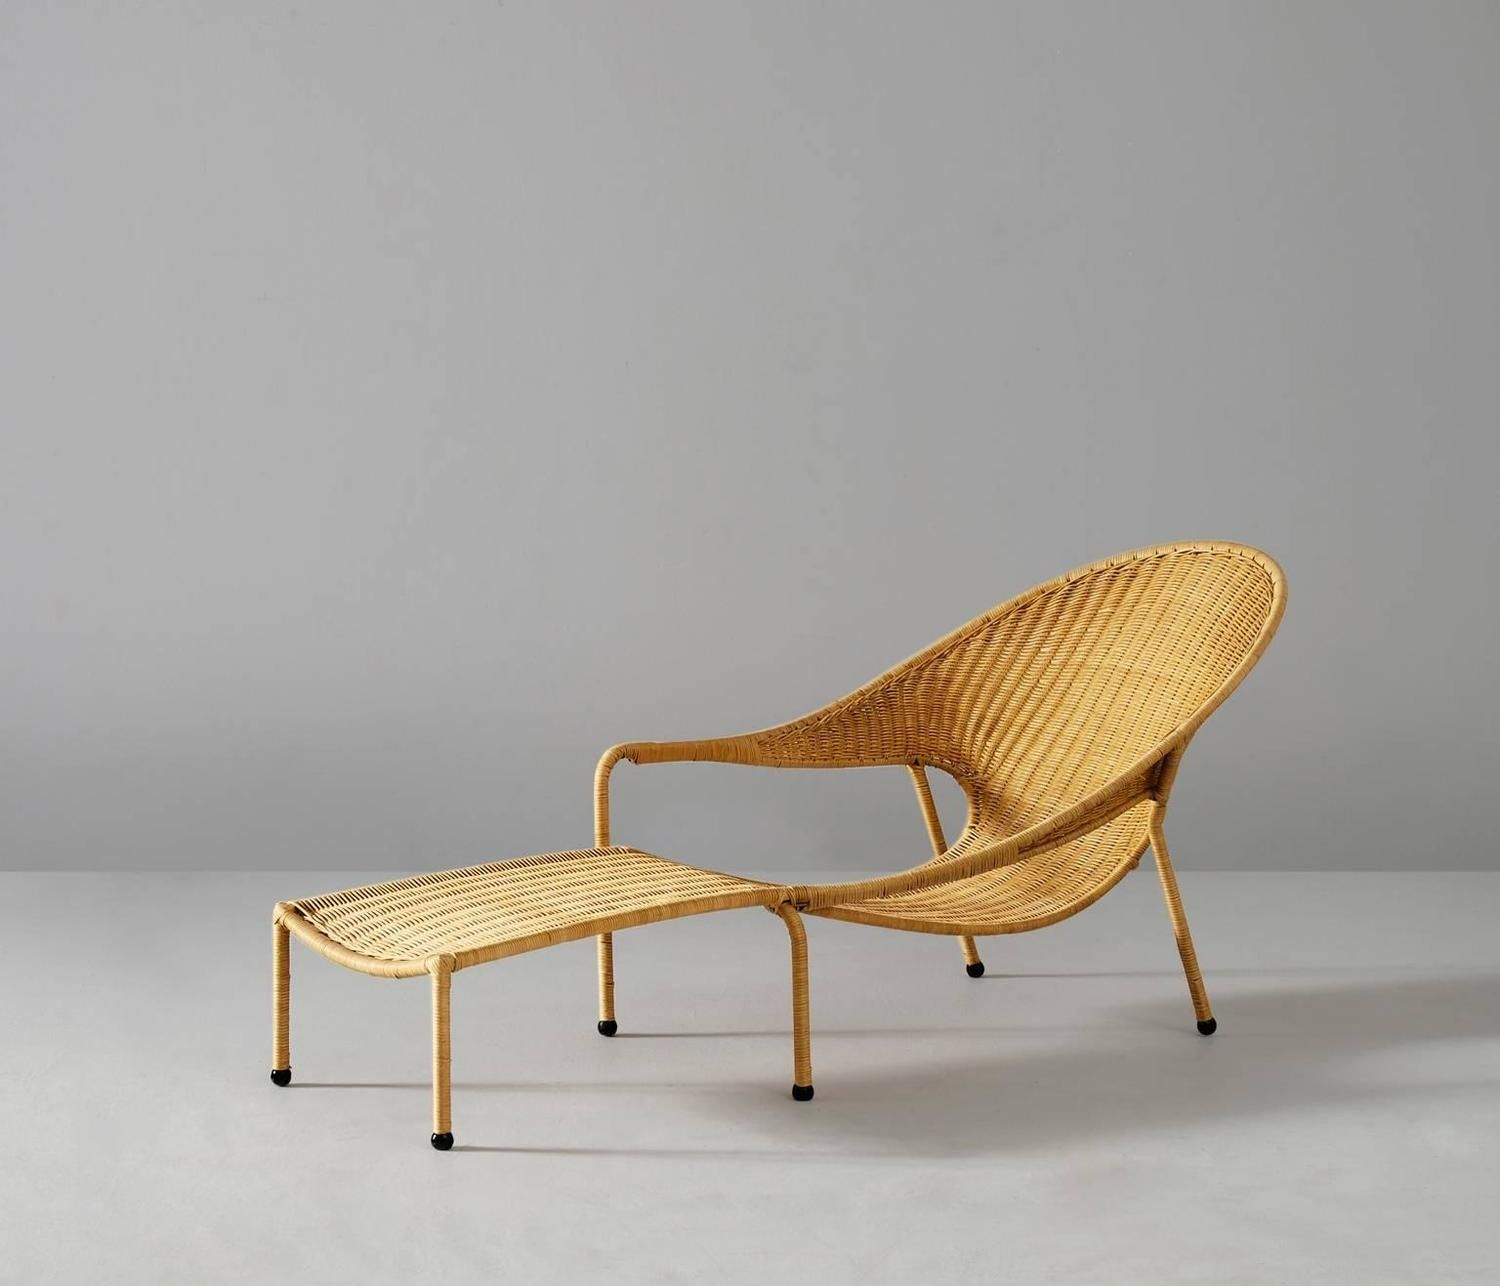 Chaise LongueCaliforniaUs1960s In Francis Mair Wicker 2019 Ygybfv67